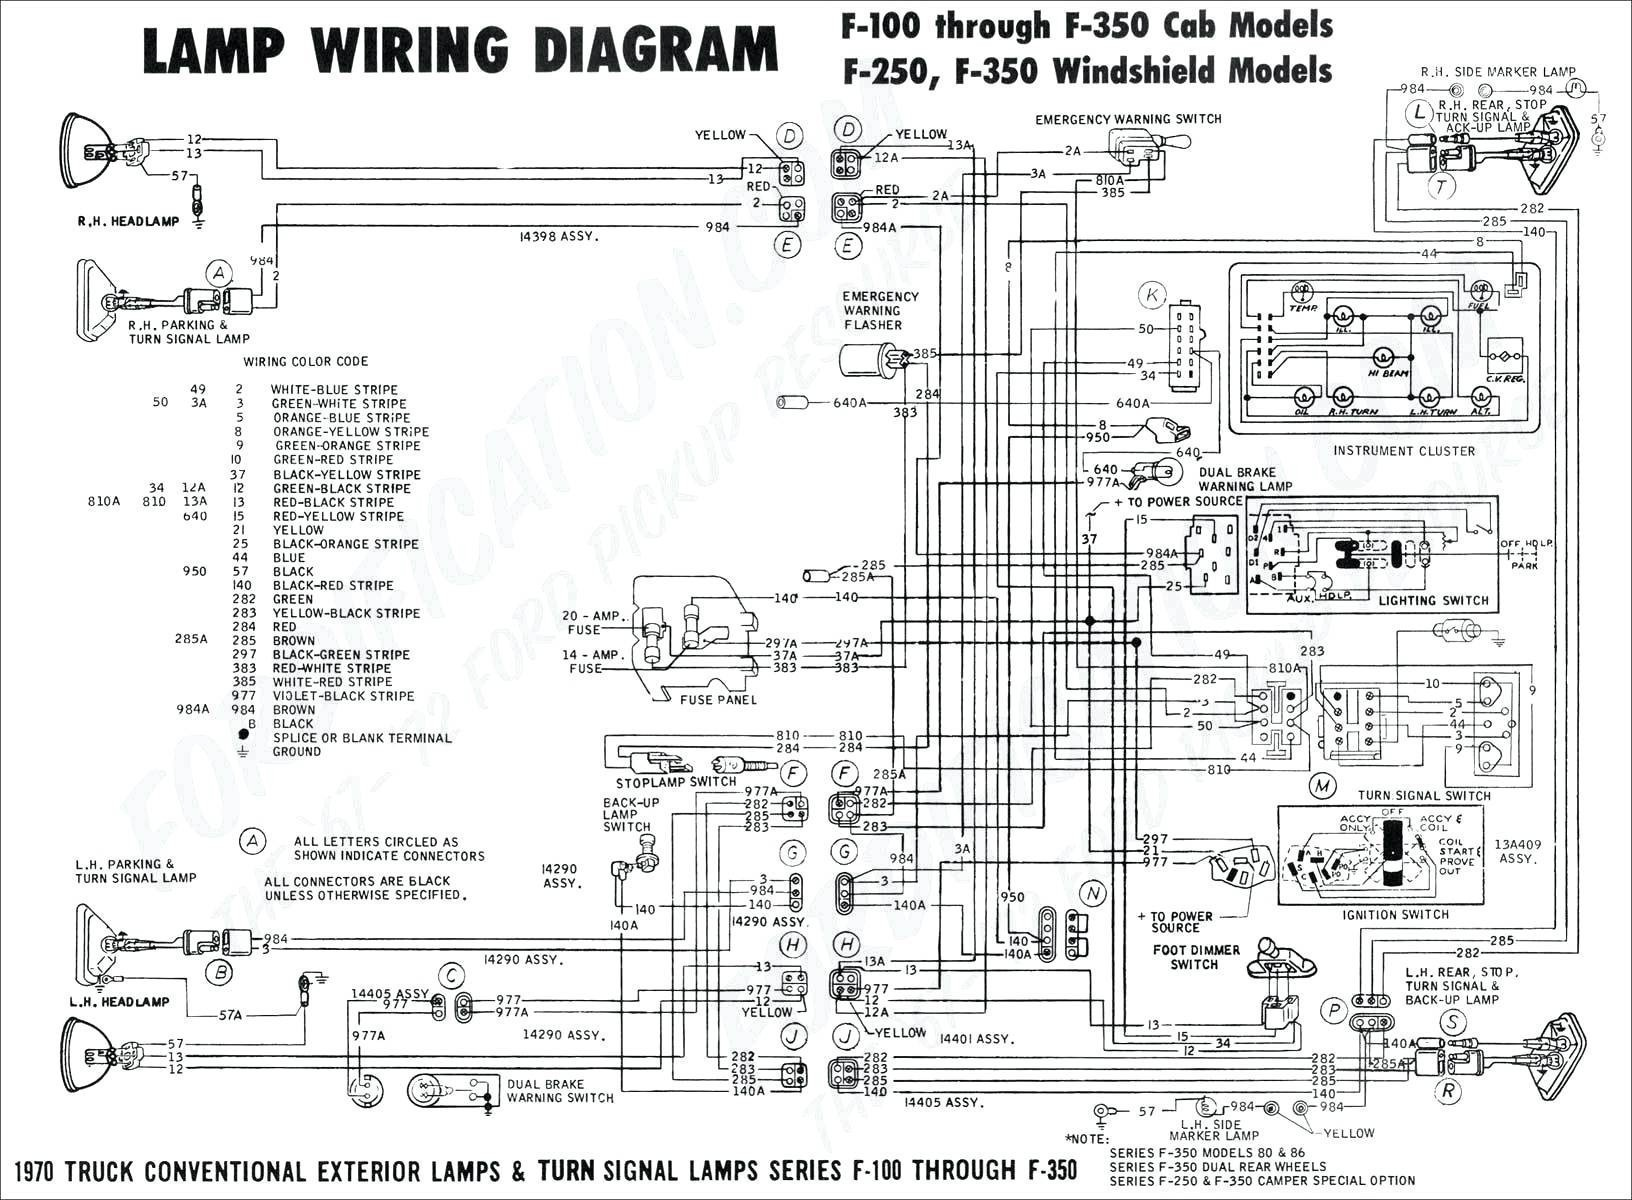 2000 Volkswagen Passat Engine Diagram Vw R32 Wiring Diagram Experts Wiring Diagram • Of 2000 Volkswagen Passat Engine Diagram